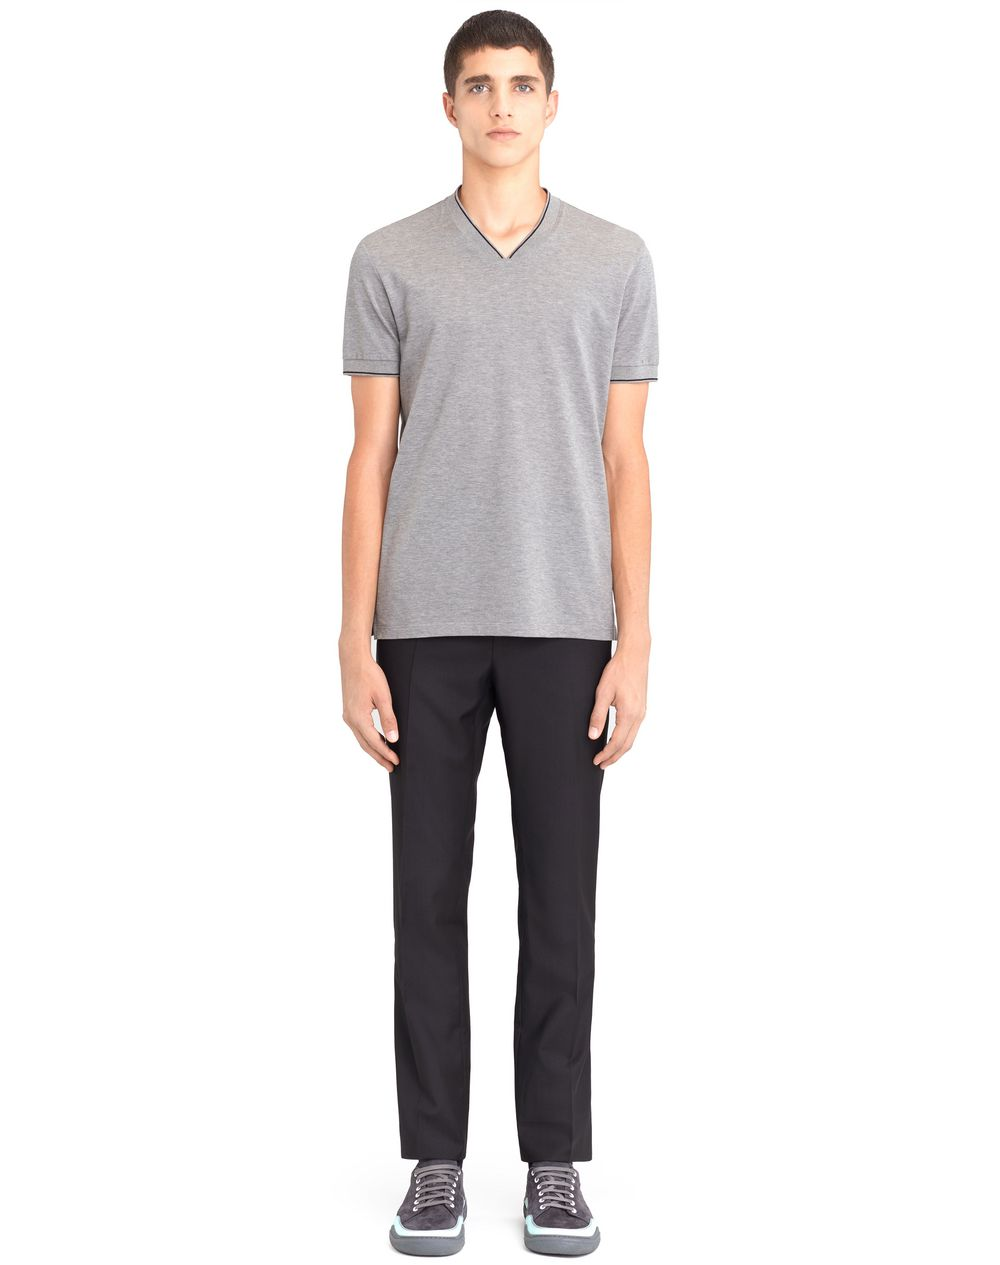 V-NECK MERCERIZED POLO SHIRT - Lanvin